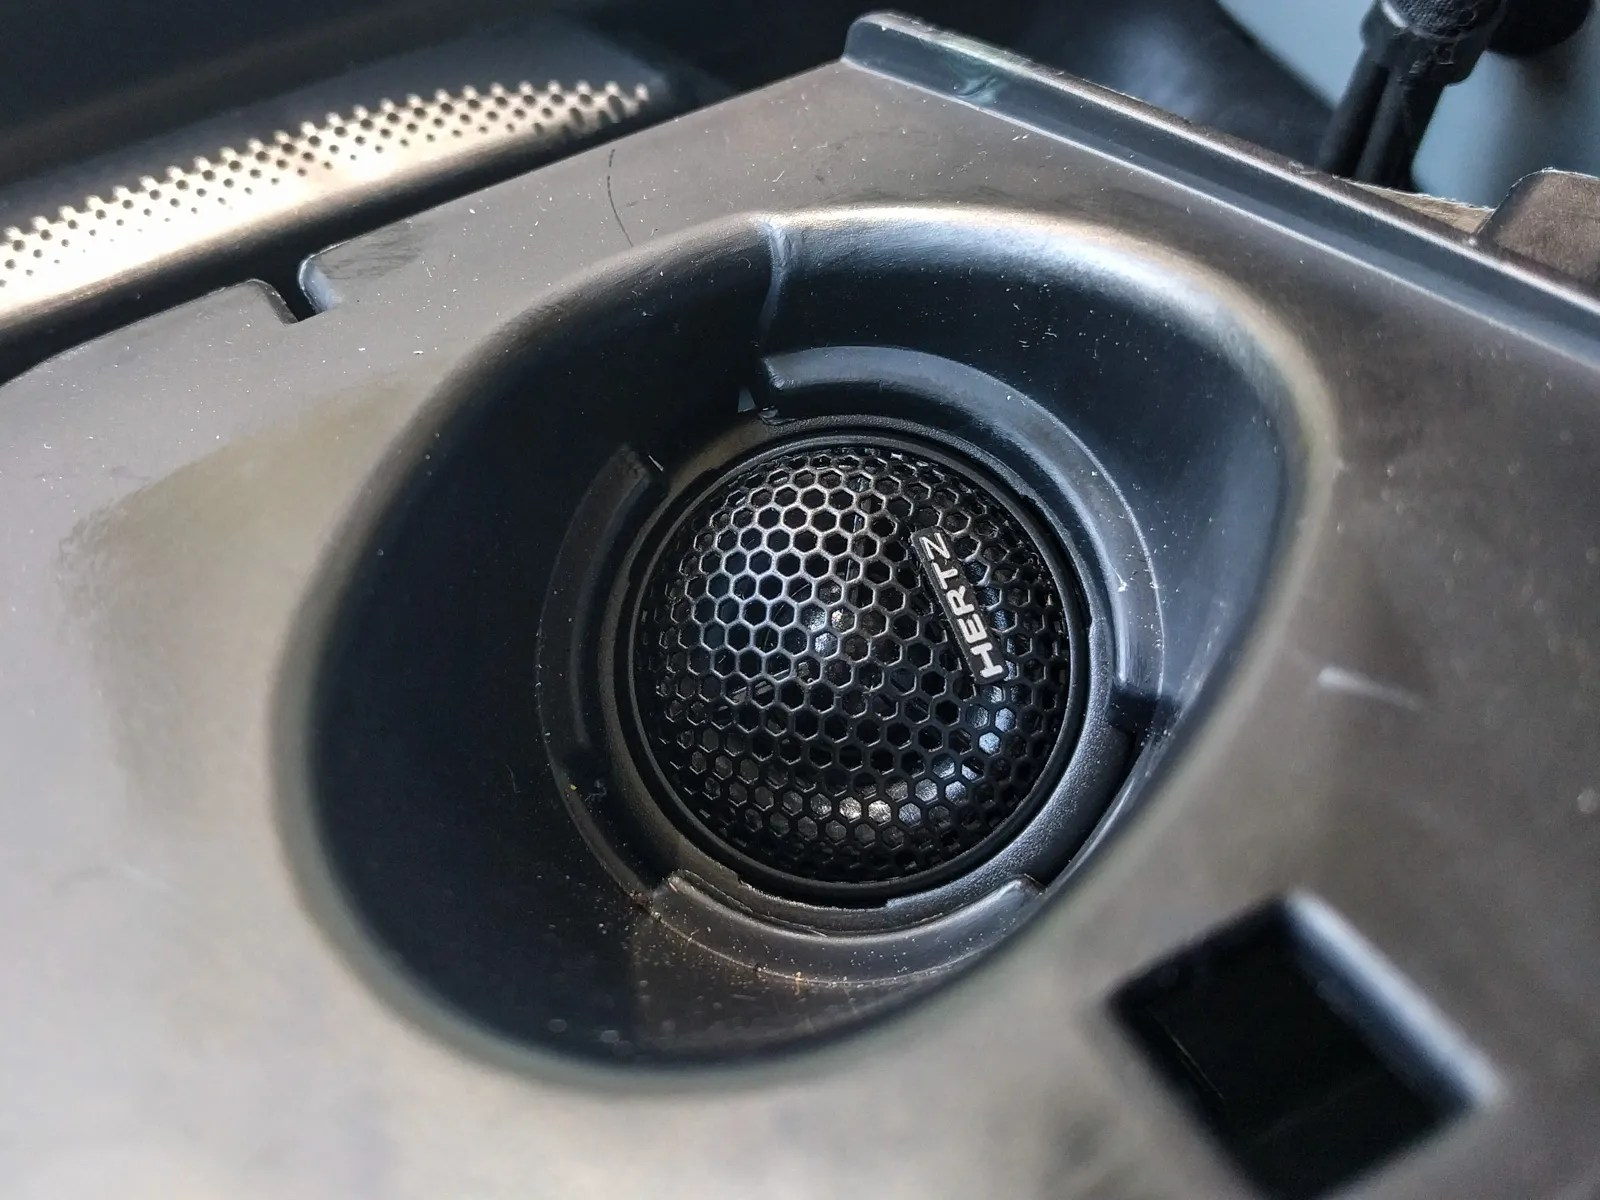 Pull the tweeter wire through to the underside of the tweeter surround, then crimp on butt connectors to join the tweeter wires to the ones coming from the crossover. Now you can push the tweeter into the underside of the surround. It should just clip in place.